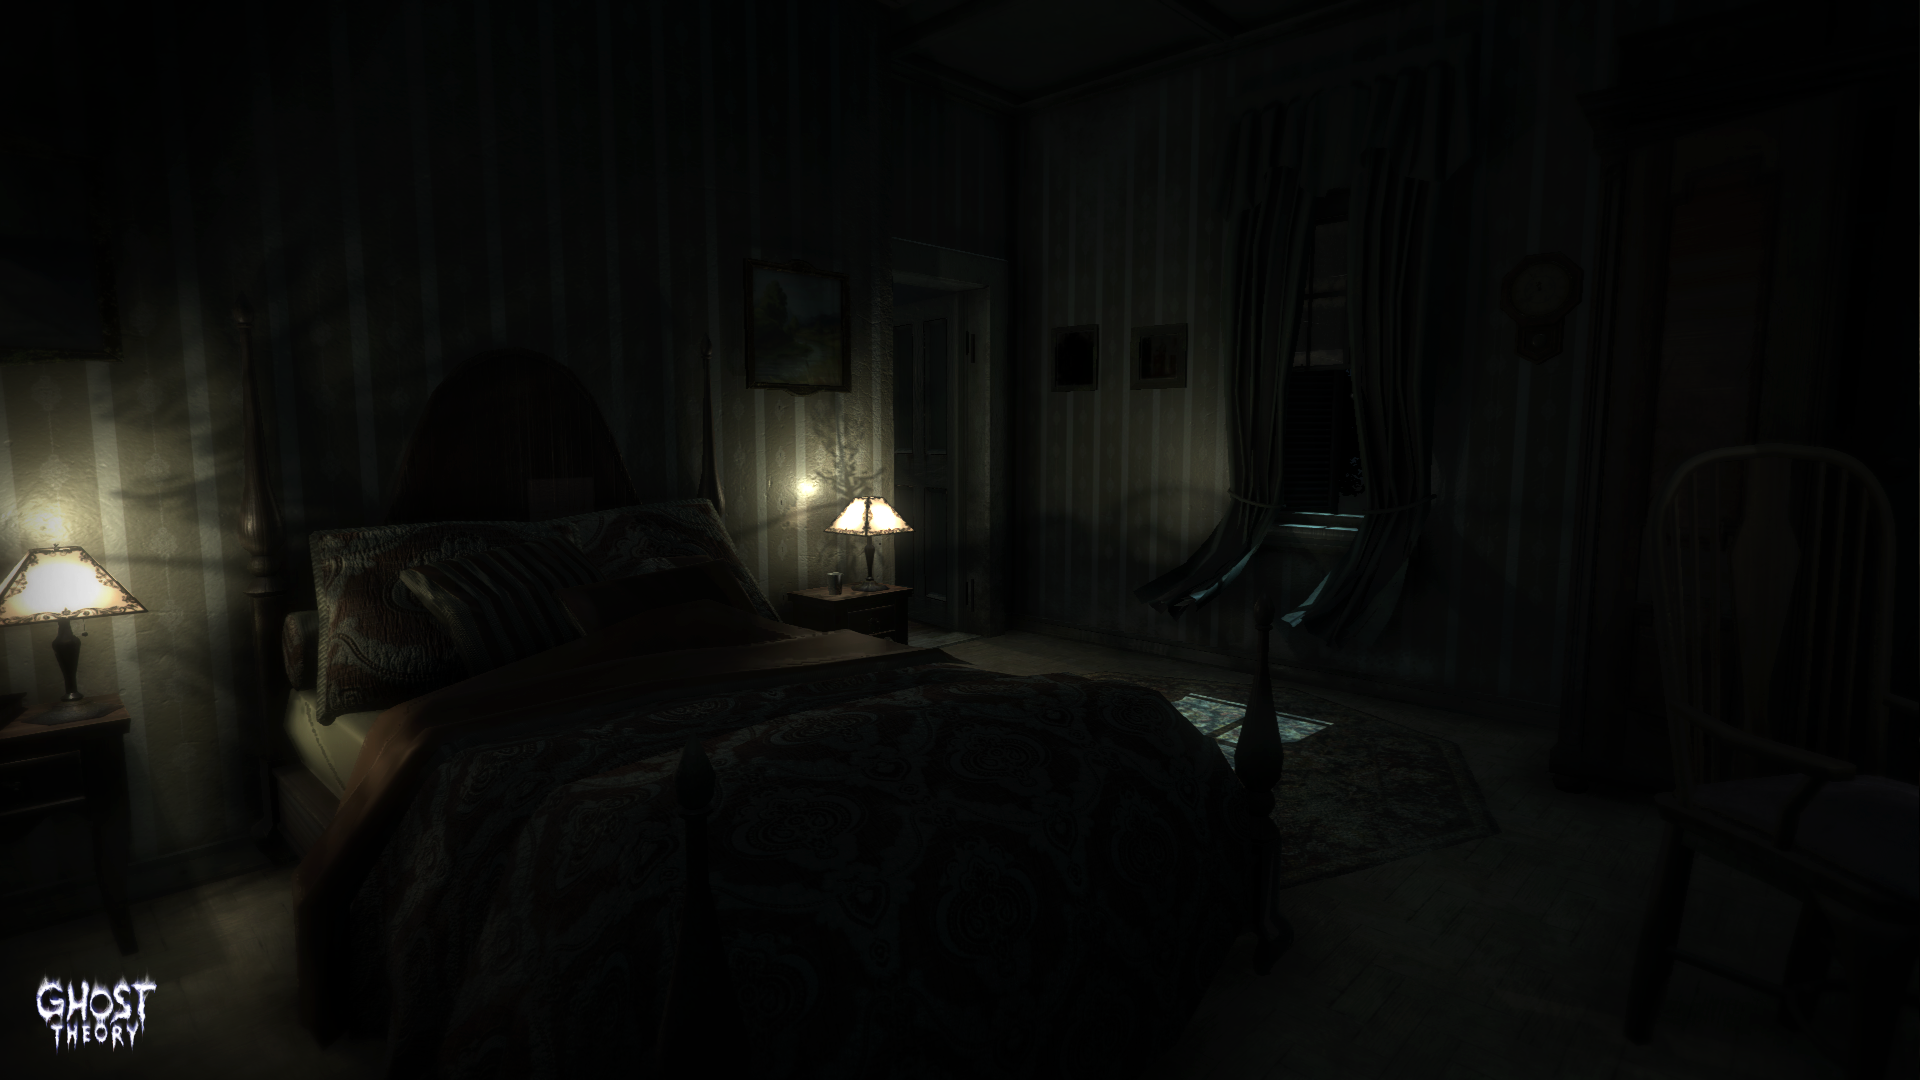 What secrets does this dark room holds? See more about Ghost Theory game on www.ghost-theory.com